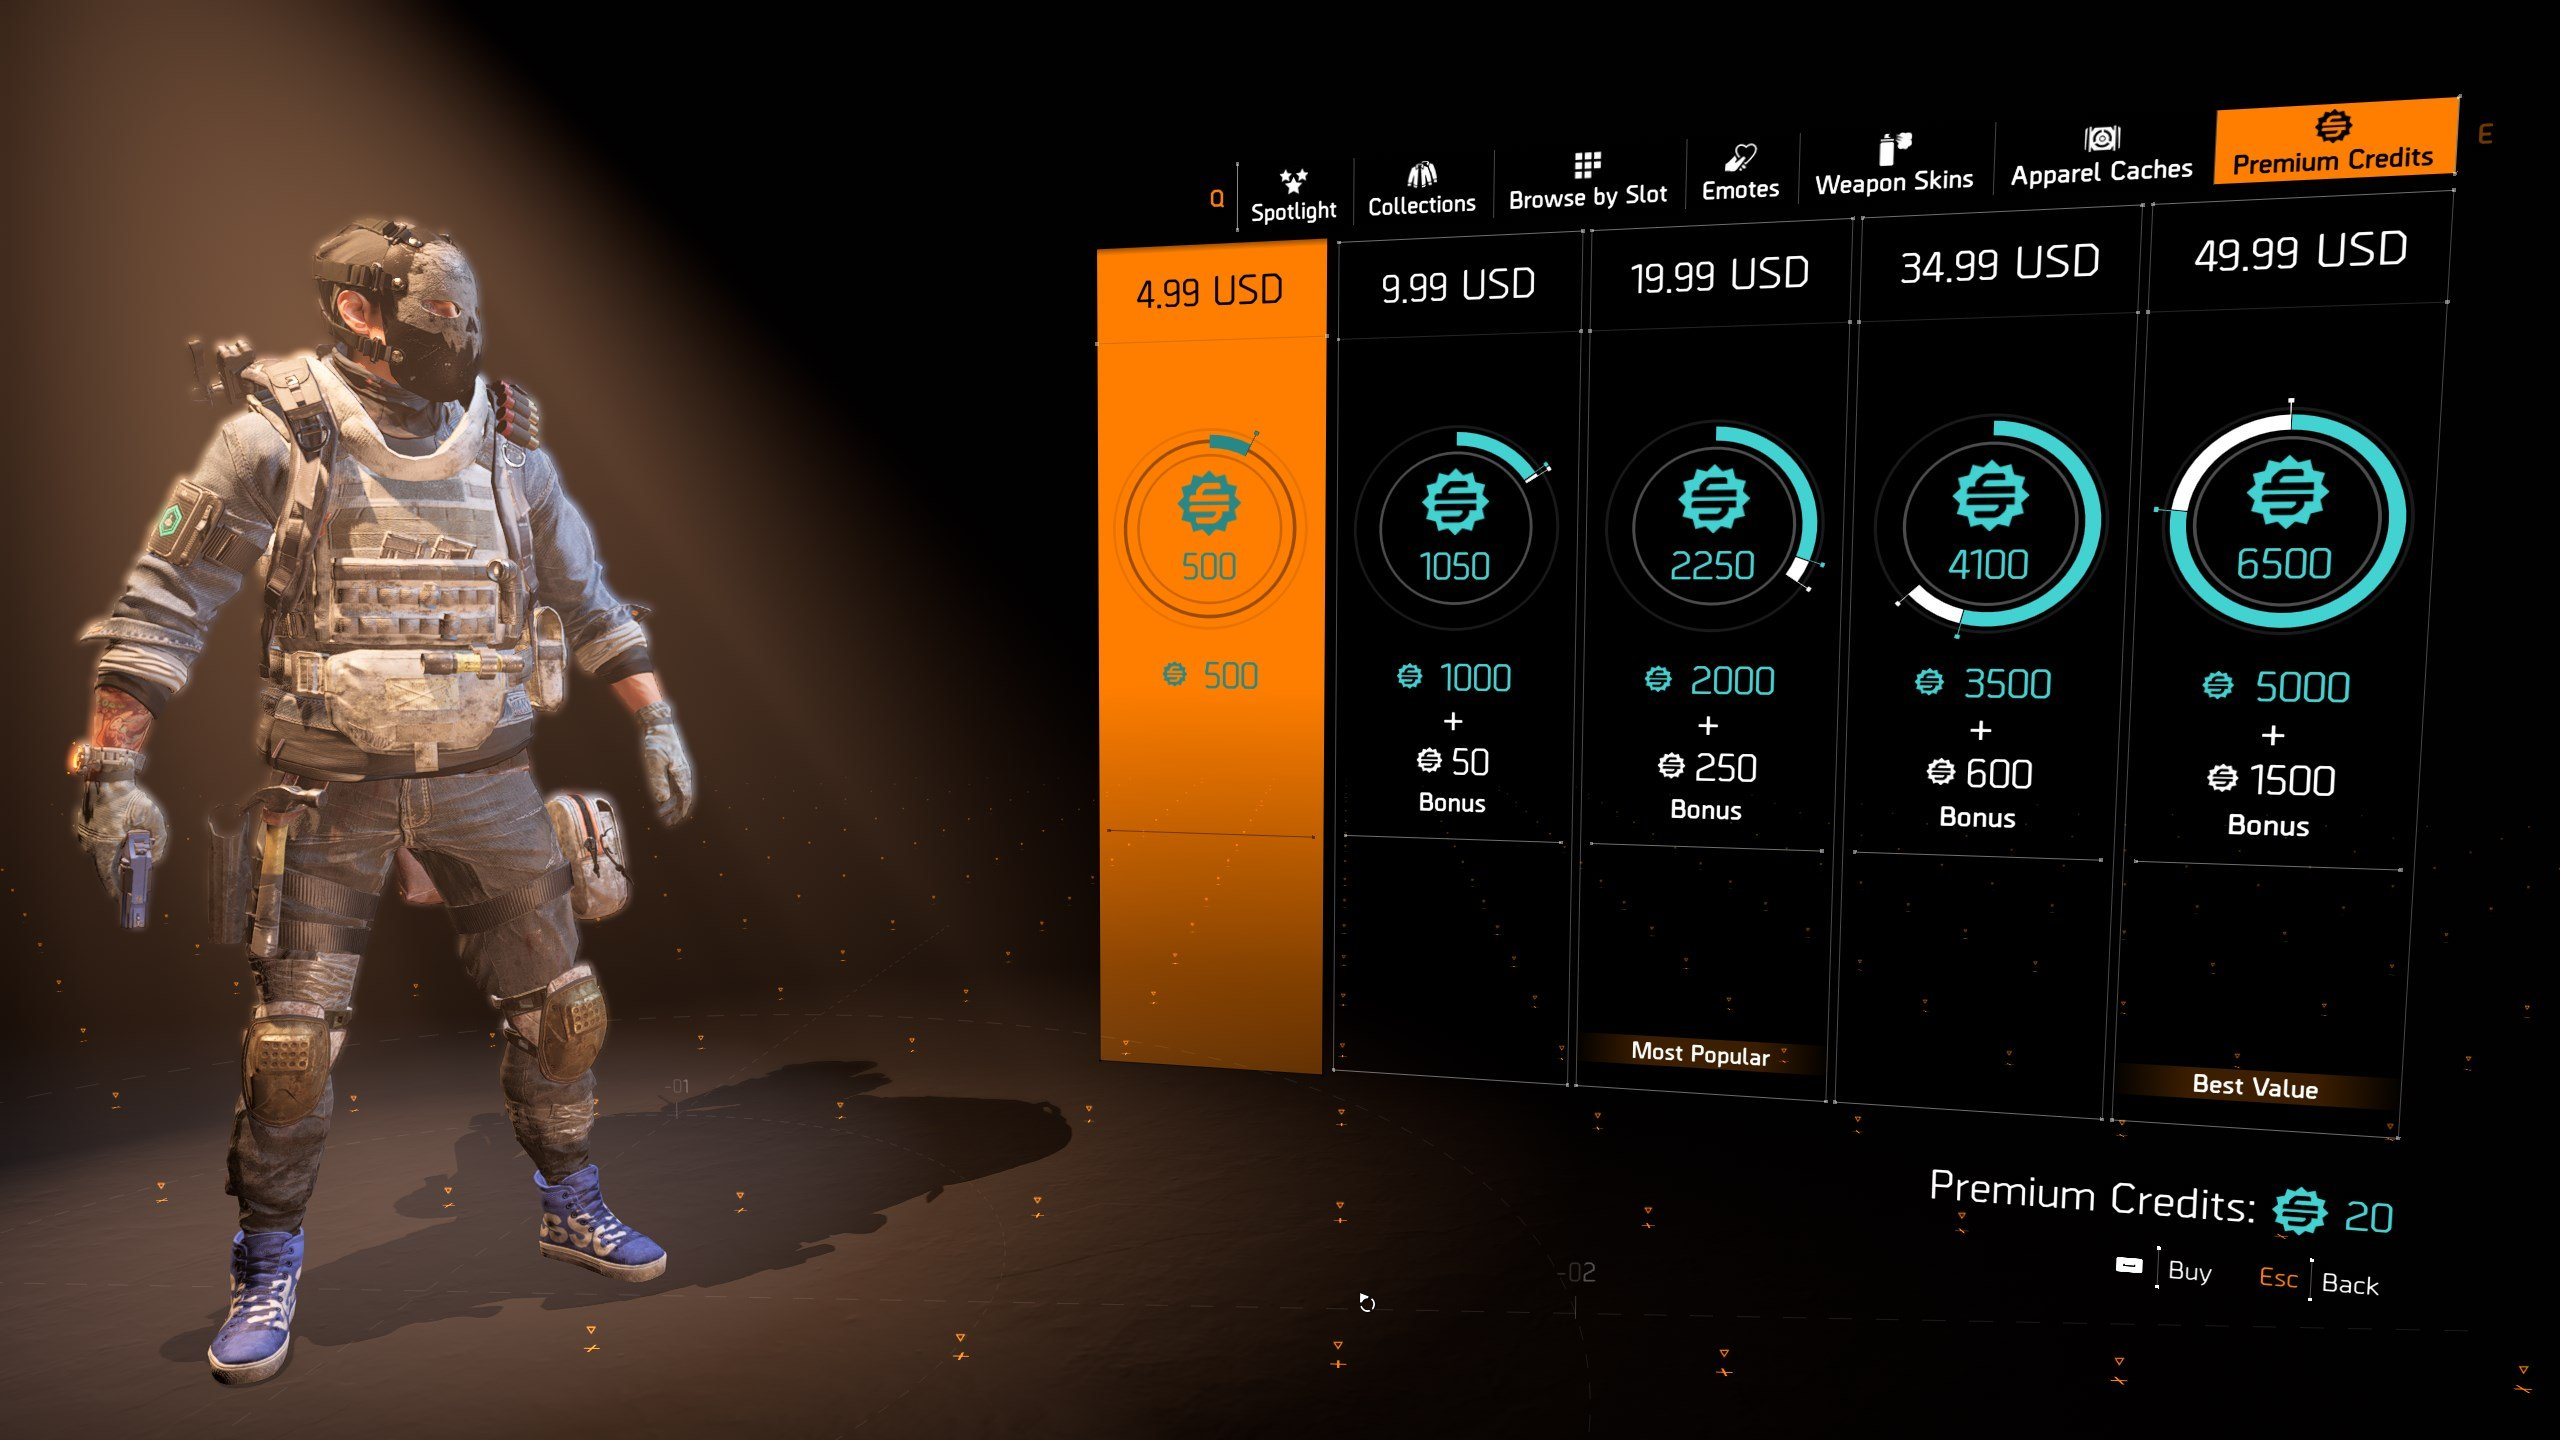 The Division 2 premium credits prices